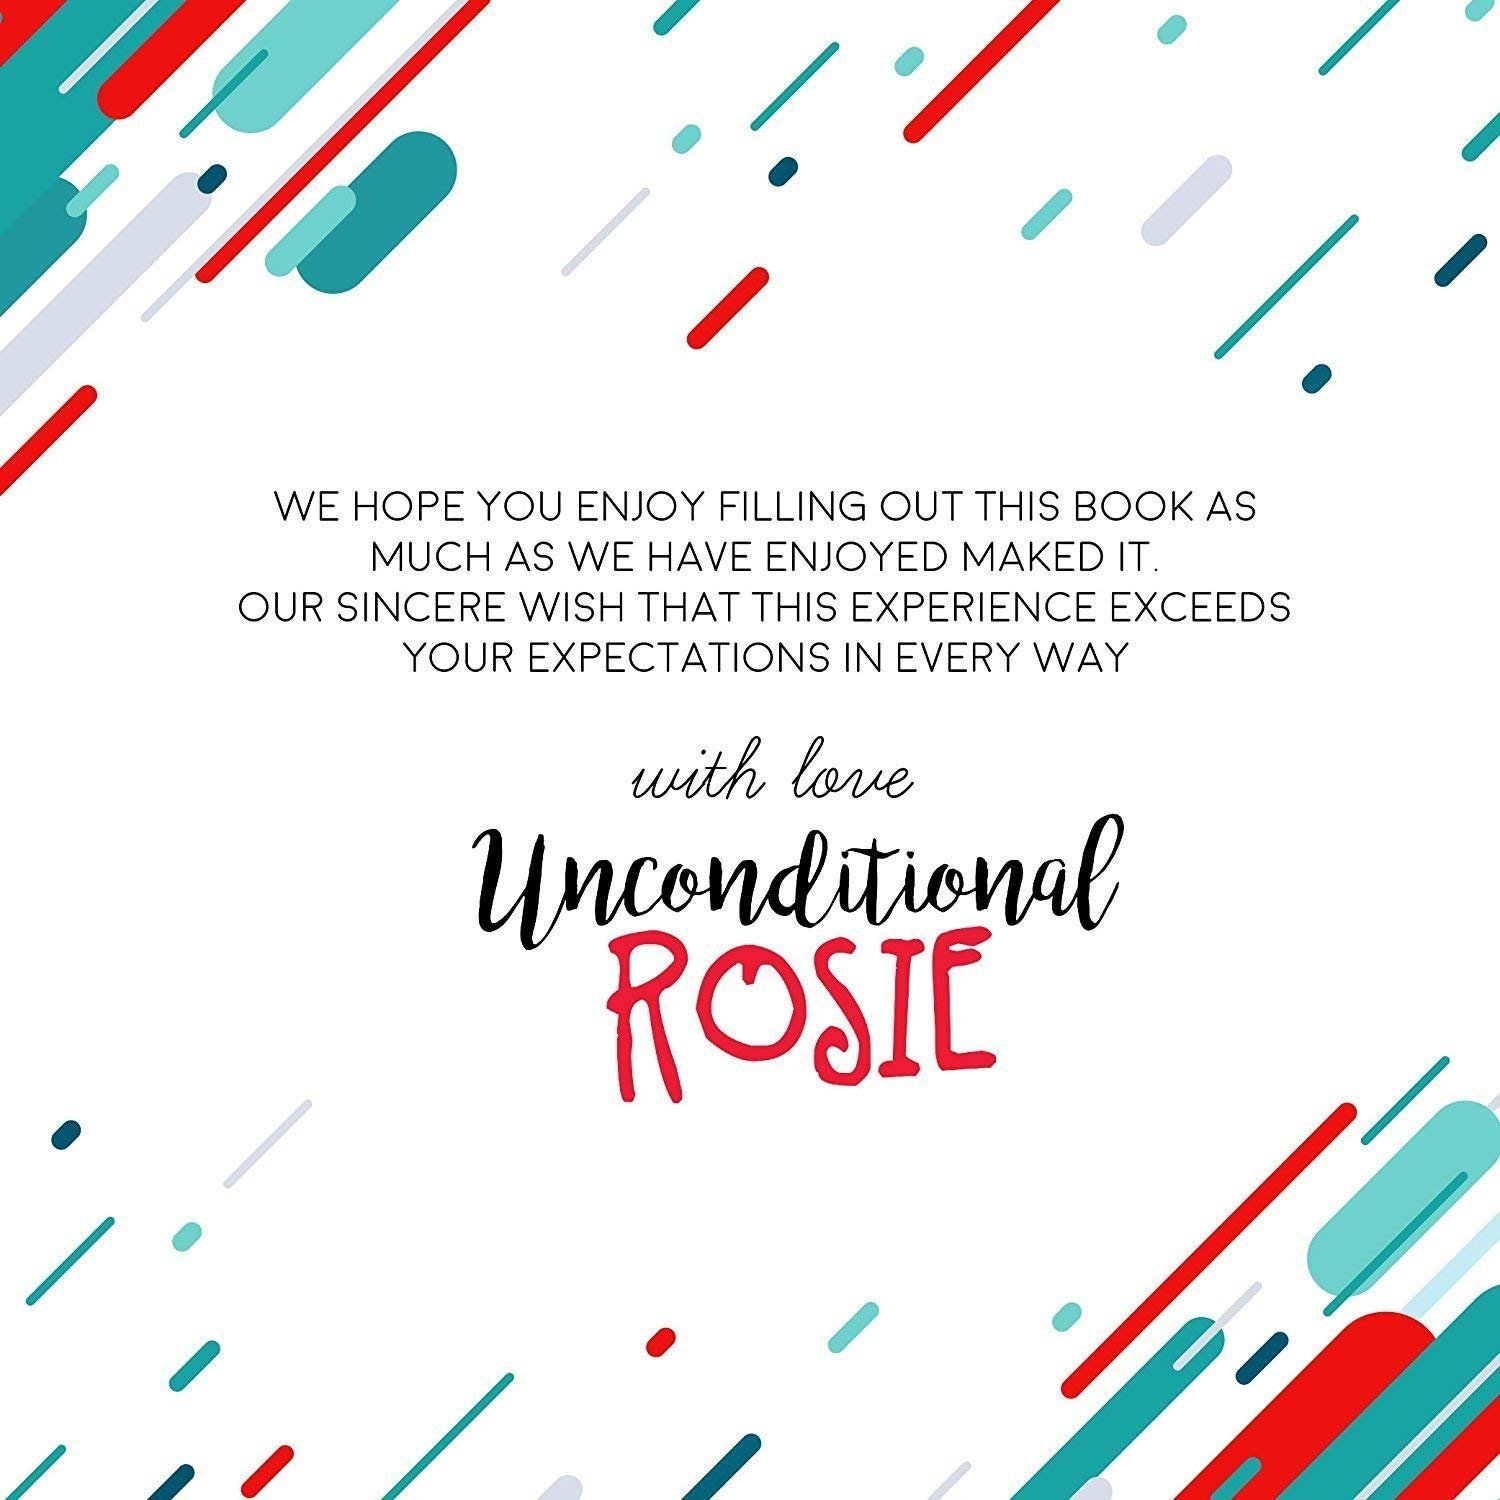 The Ultimate Wedding Planner – A Complete 80 Pages Hardcover Organizer that Includes Checklists, Party Planner, Budget Organizer, Honeymoon and More to Help You Organize The Wedding of Your Dreams! by Unconditional Rosie (Image #8)